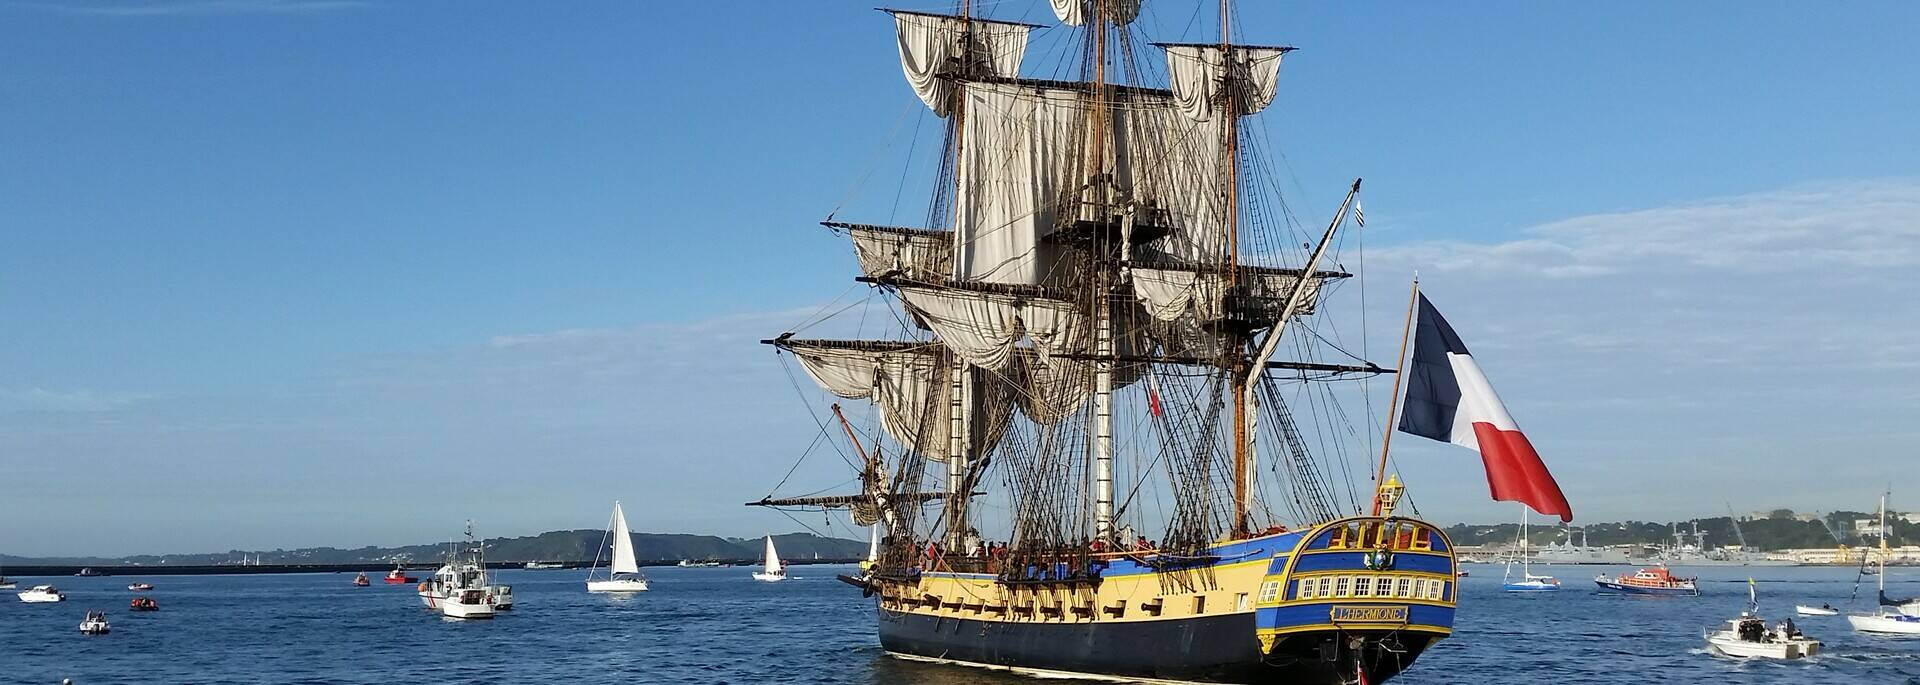 The frigate Hermione leaving for Brittany in 2016 - © Office de tourisme Rochefort Océan